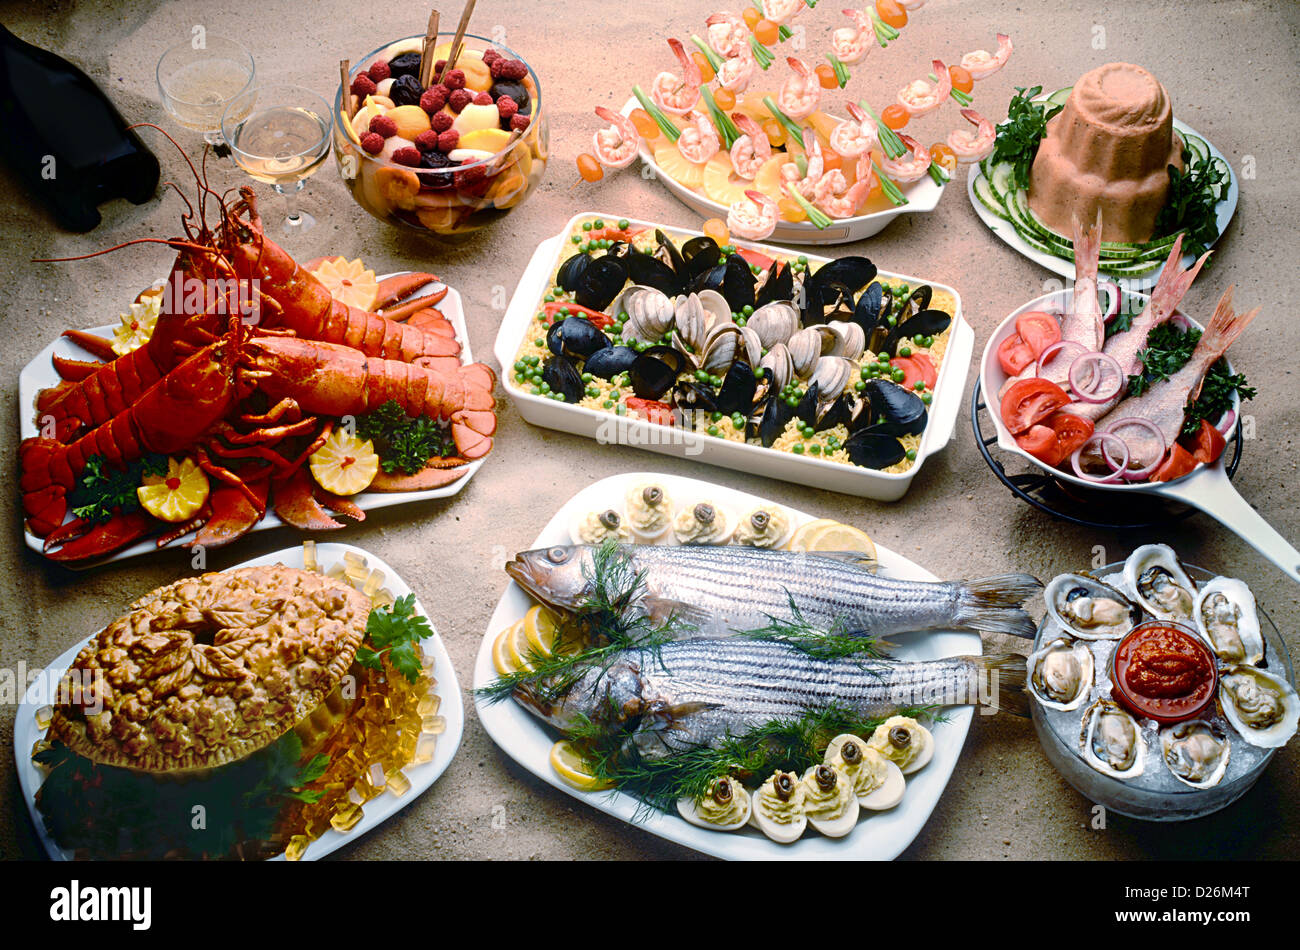 fruits de mer sur le sable Photo Stock